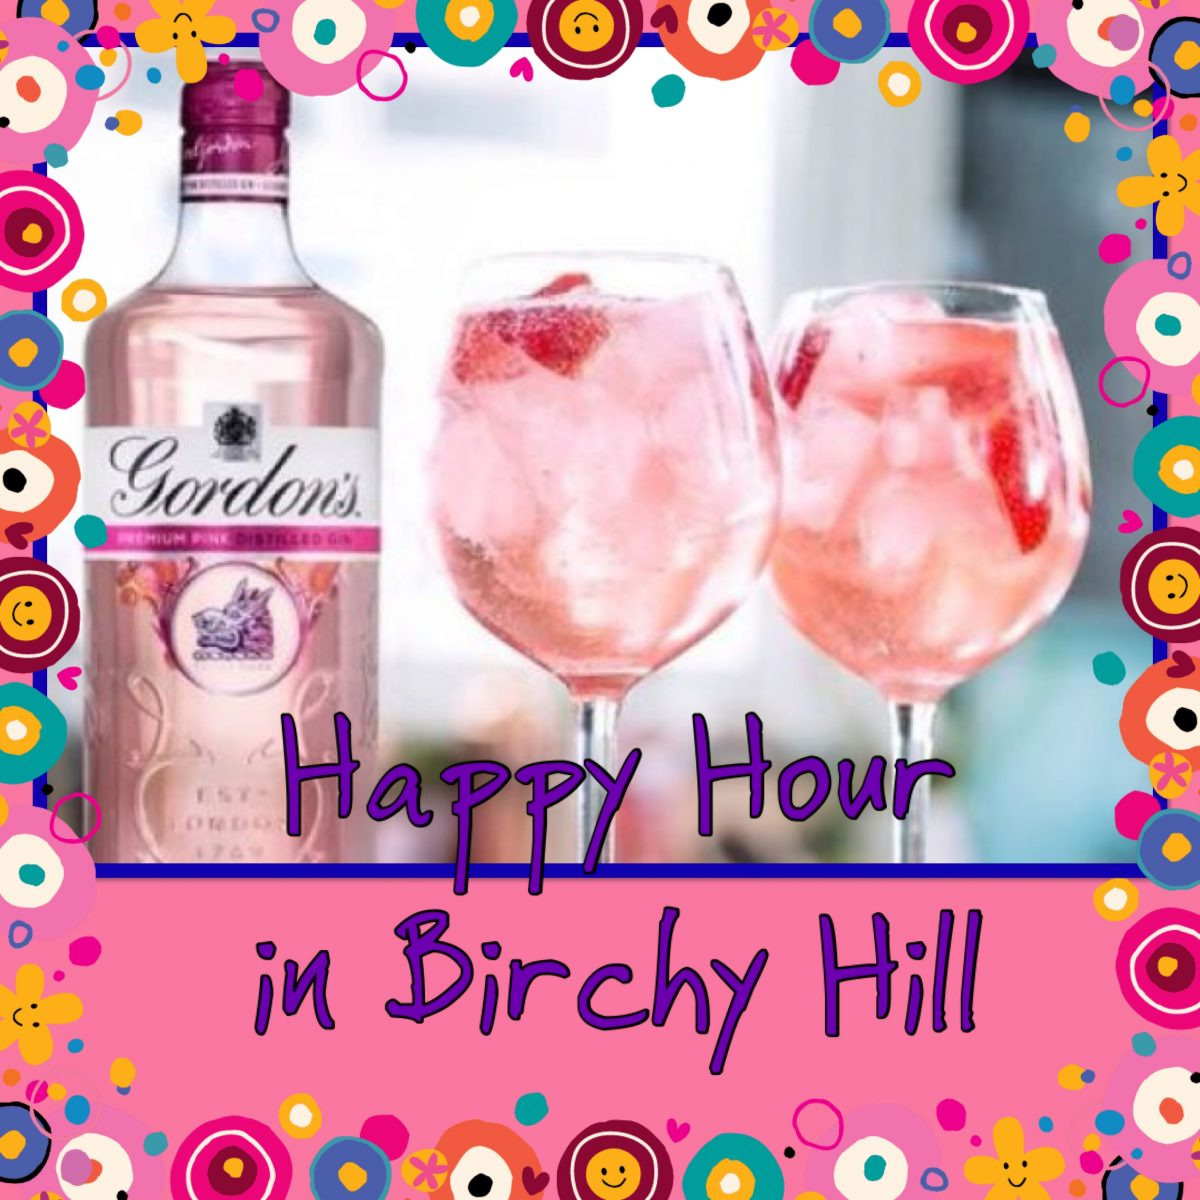 HAPPY HOUR AT BIRCHY HILL